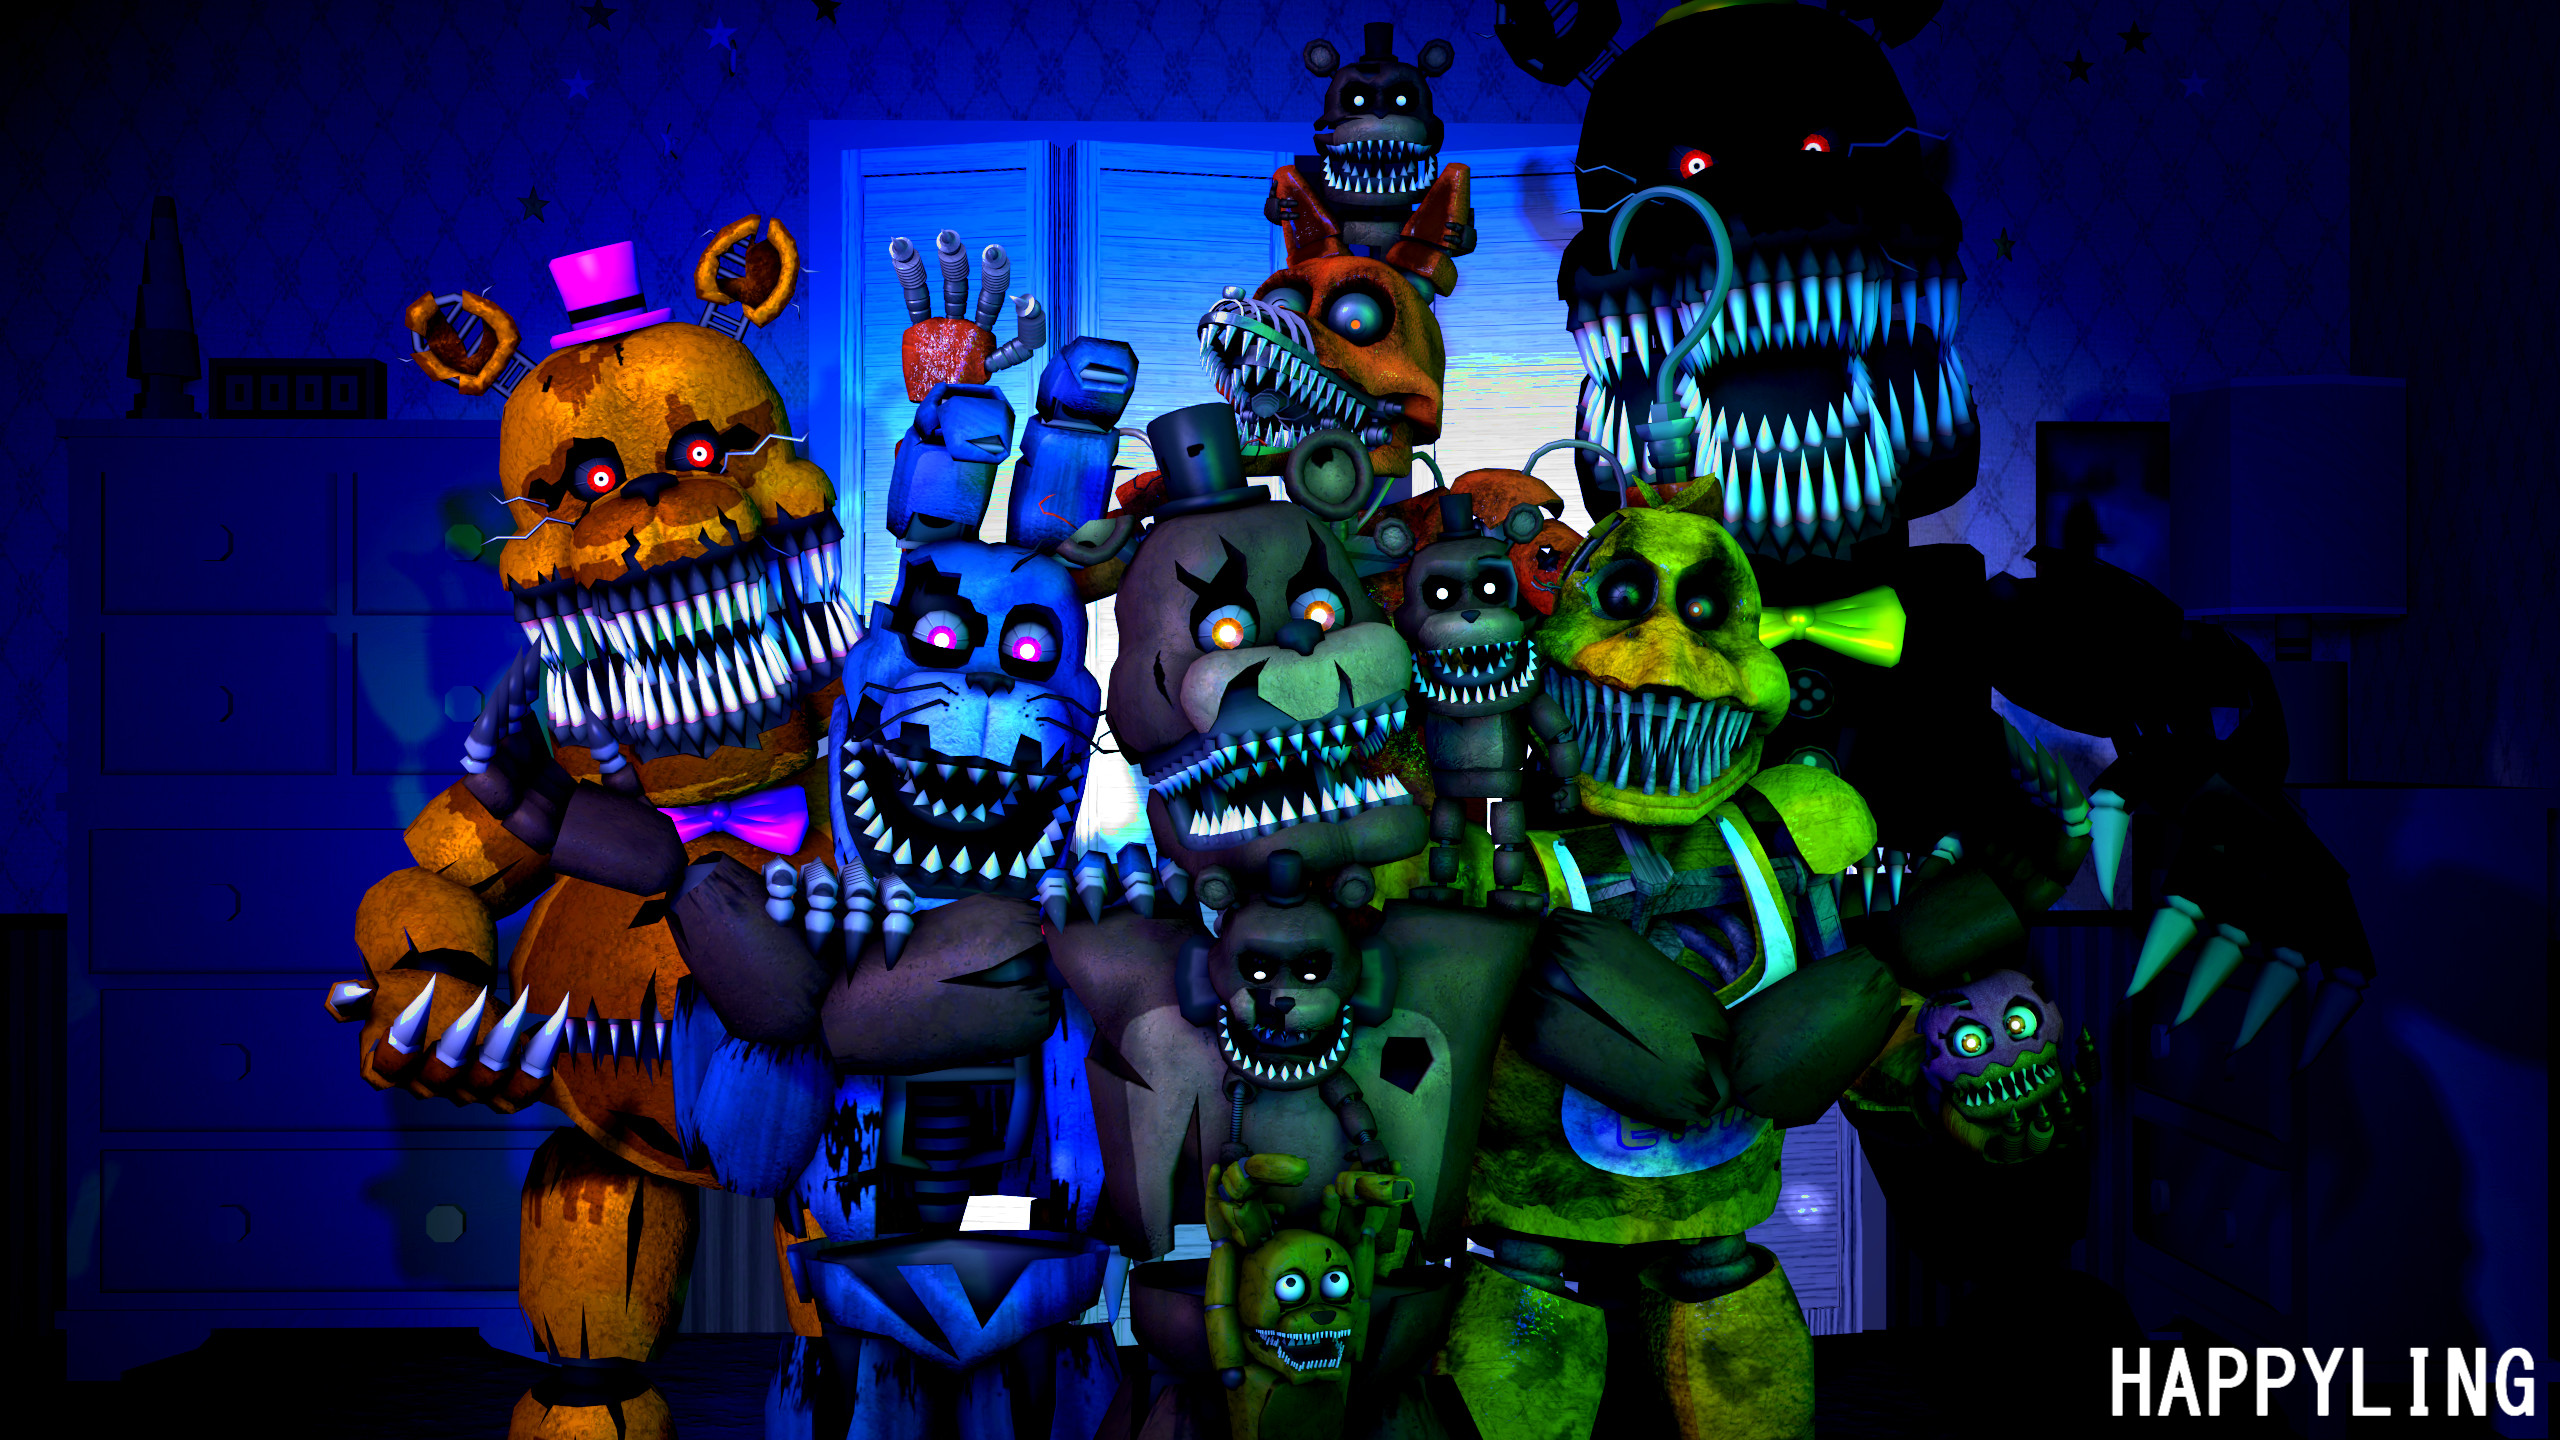 2560x1440 [SFM FNAF] Five nights at Freddy's 4 wallpaper by Happyling, A 2560 x